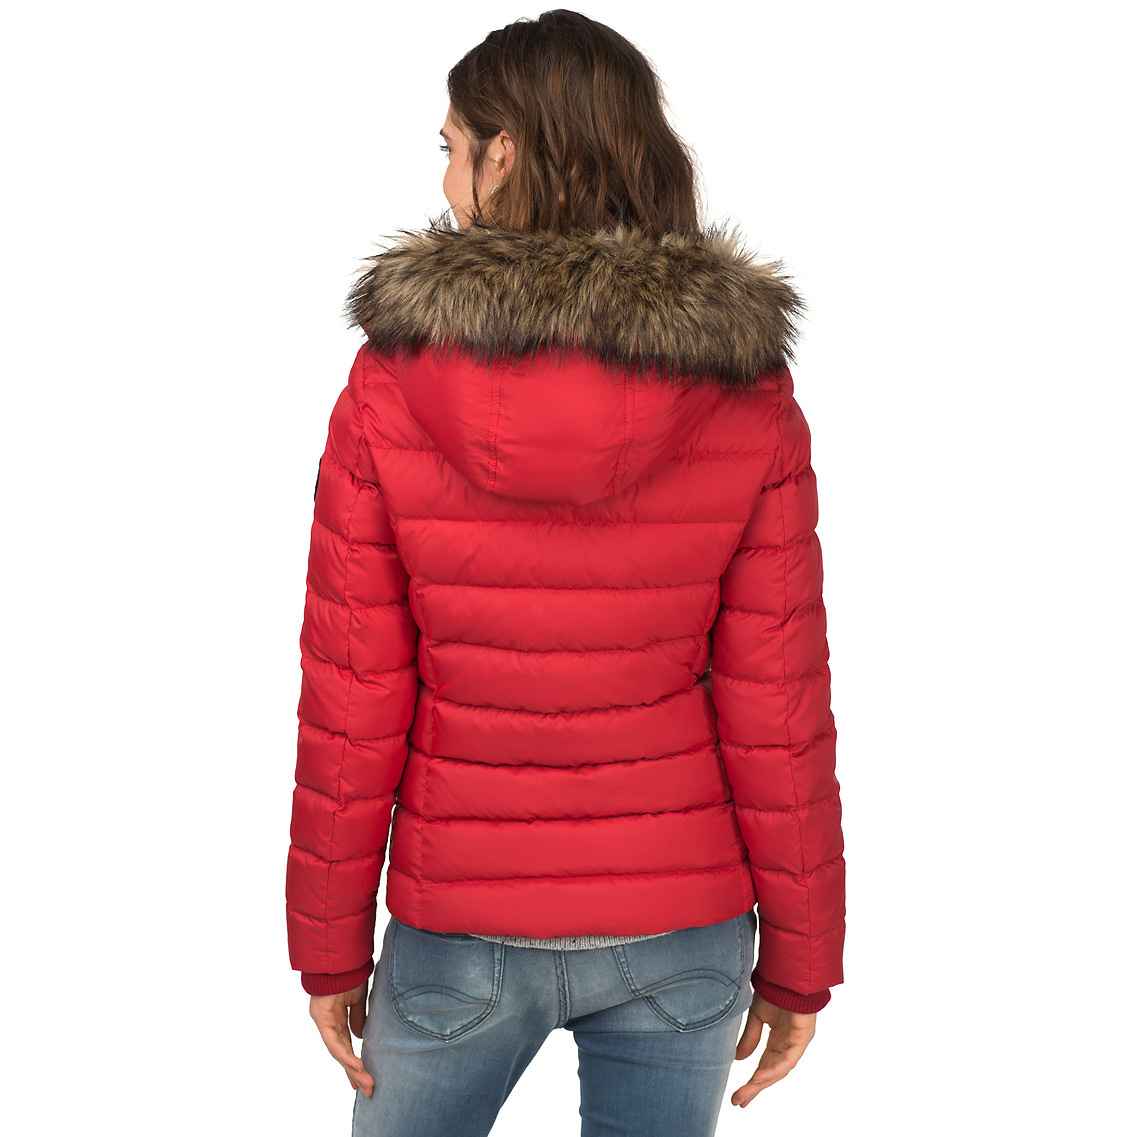 41ca92bb372 Tommy Hilfiger Martina Down Filled Bomber Jacket in Red - Lyst